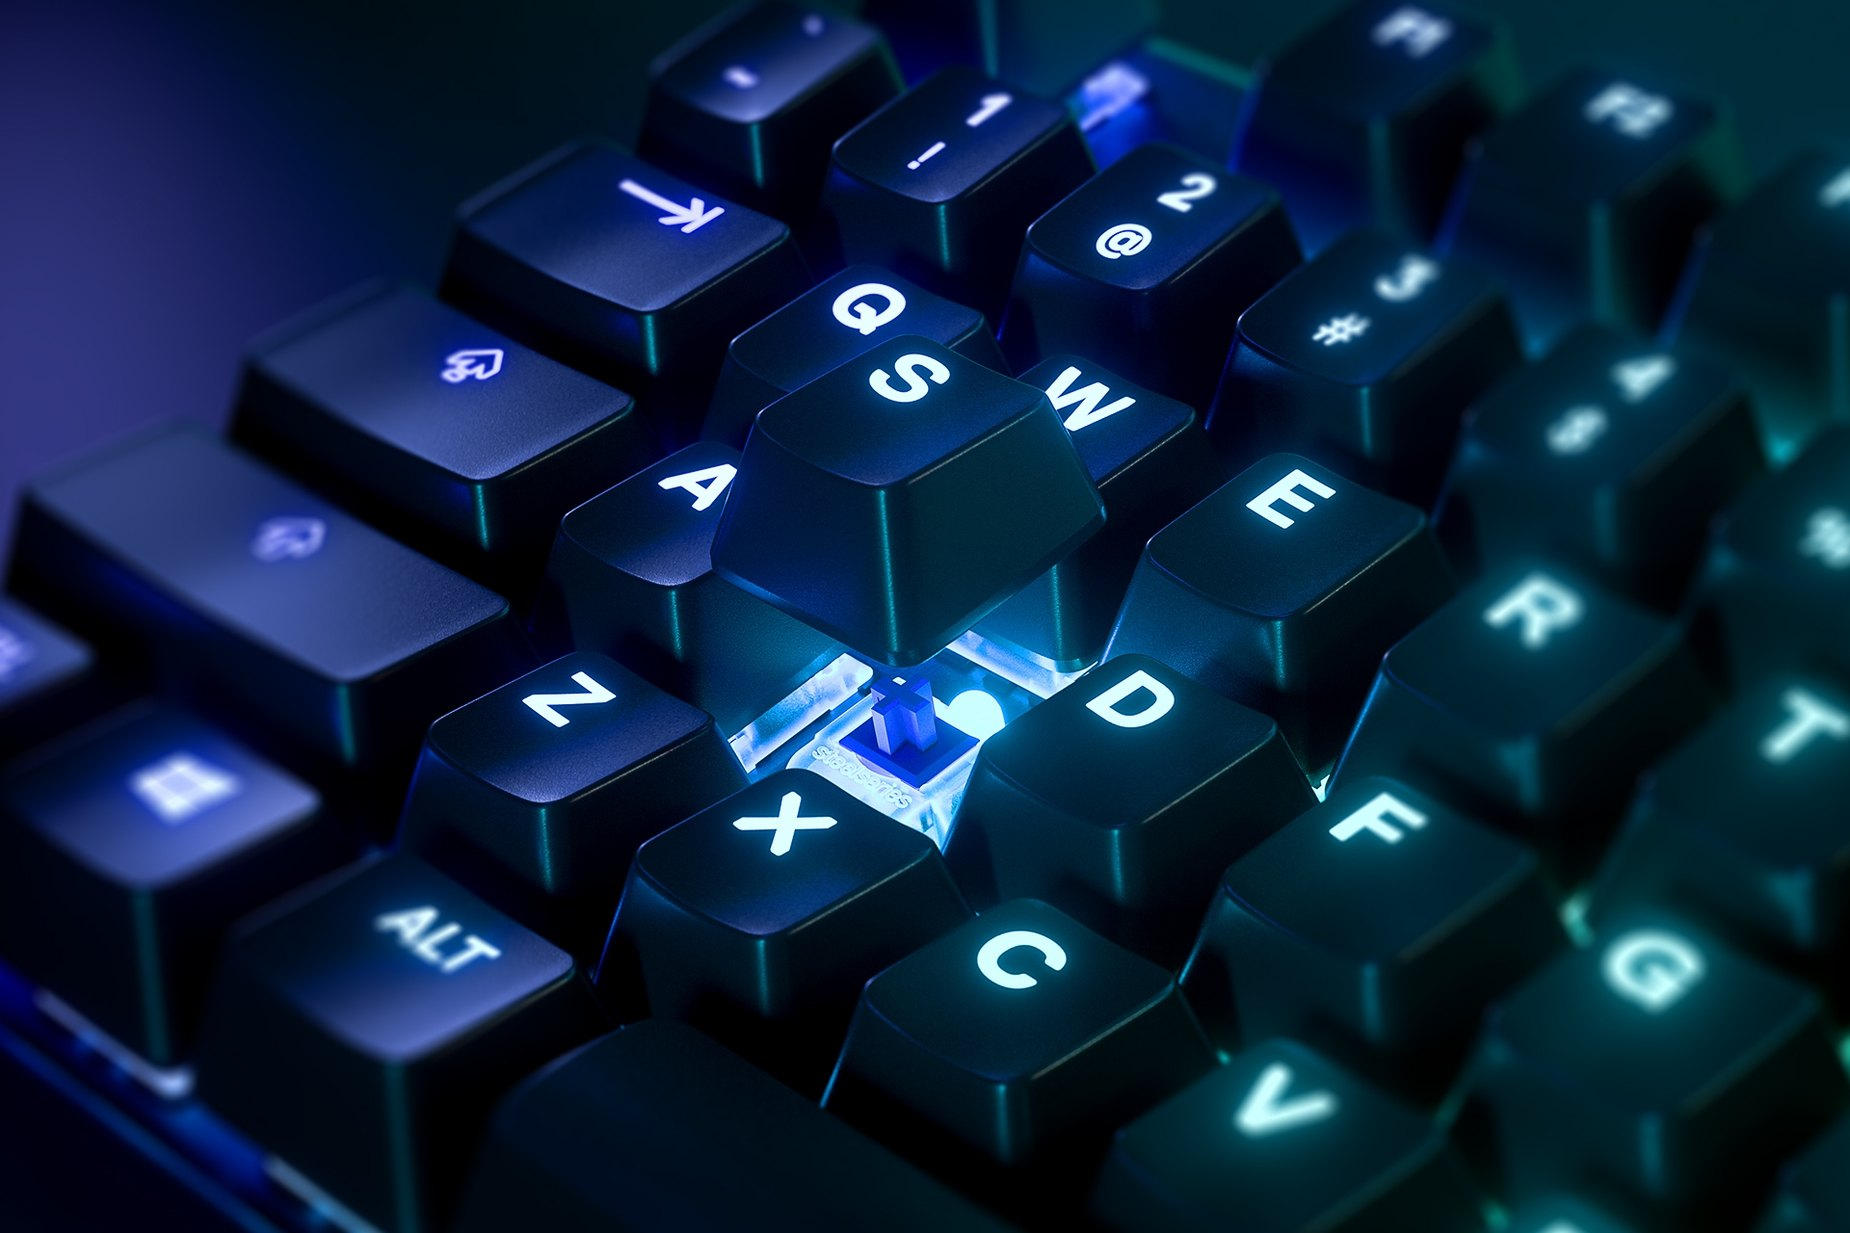 Zoomed in view of a single key on the Japanese - Apex 7 TKL (Blue Switch) gaming keyboard, the key is raised up to show the SteelSeries QX2 Mechanical RGB Switch underneath